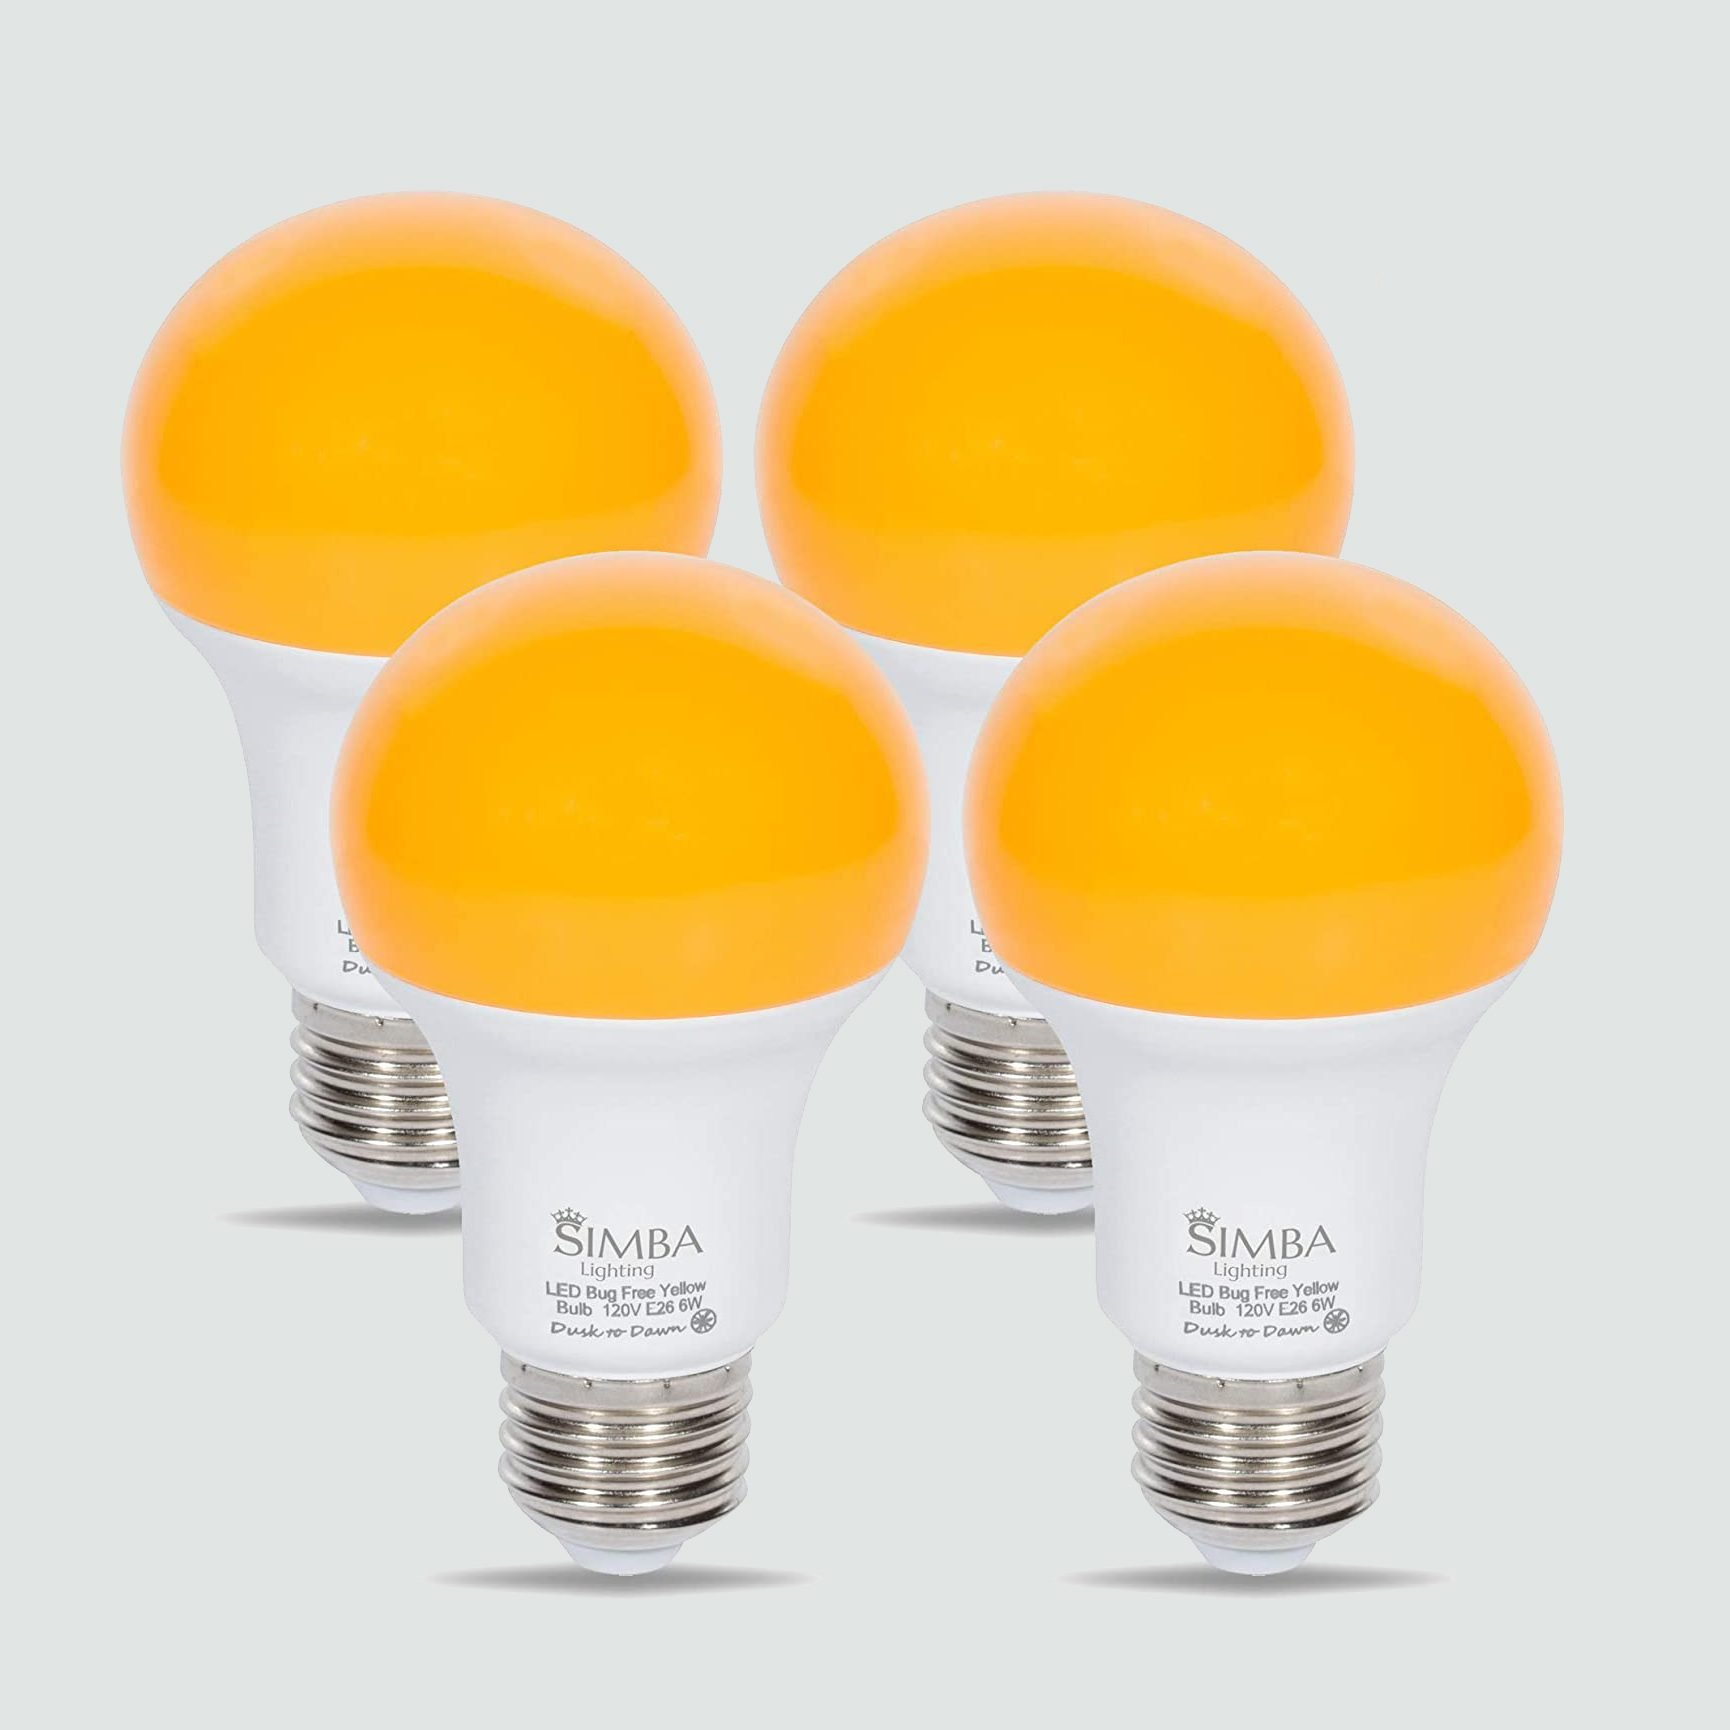 Simba Lighting LED Bug Repelling Yellow Bulb